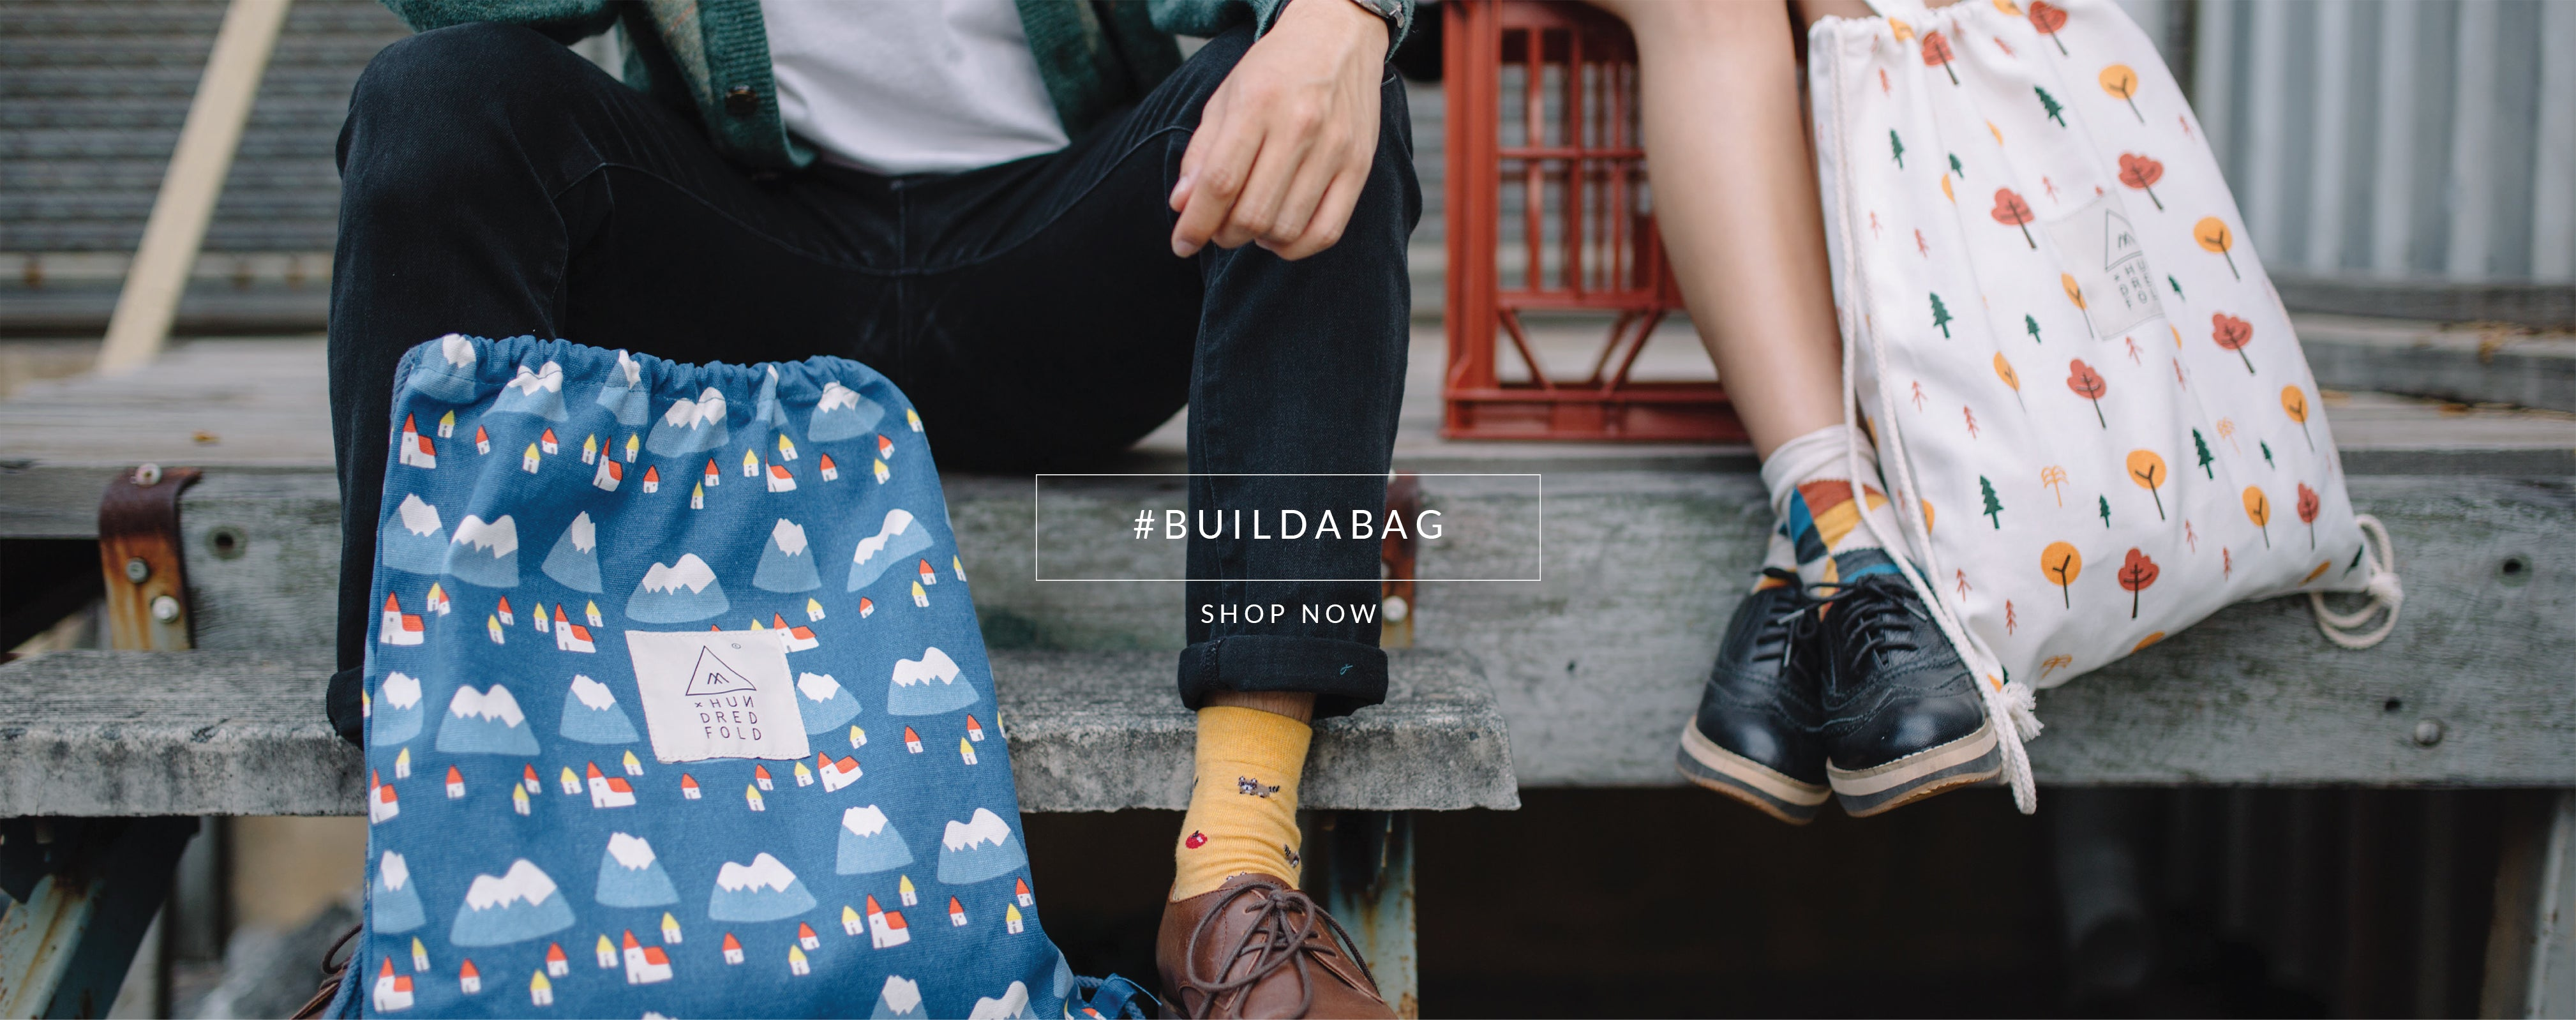 #buildabag shop now